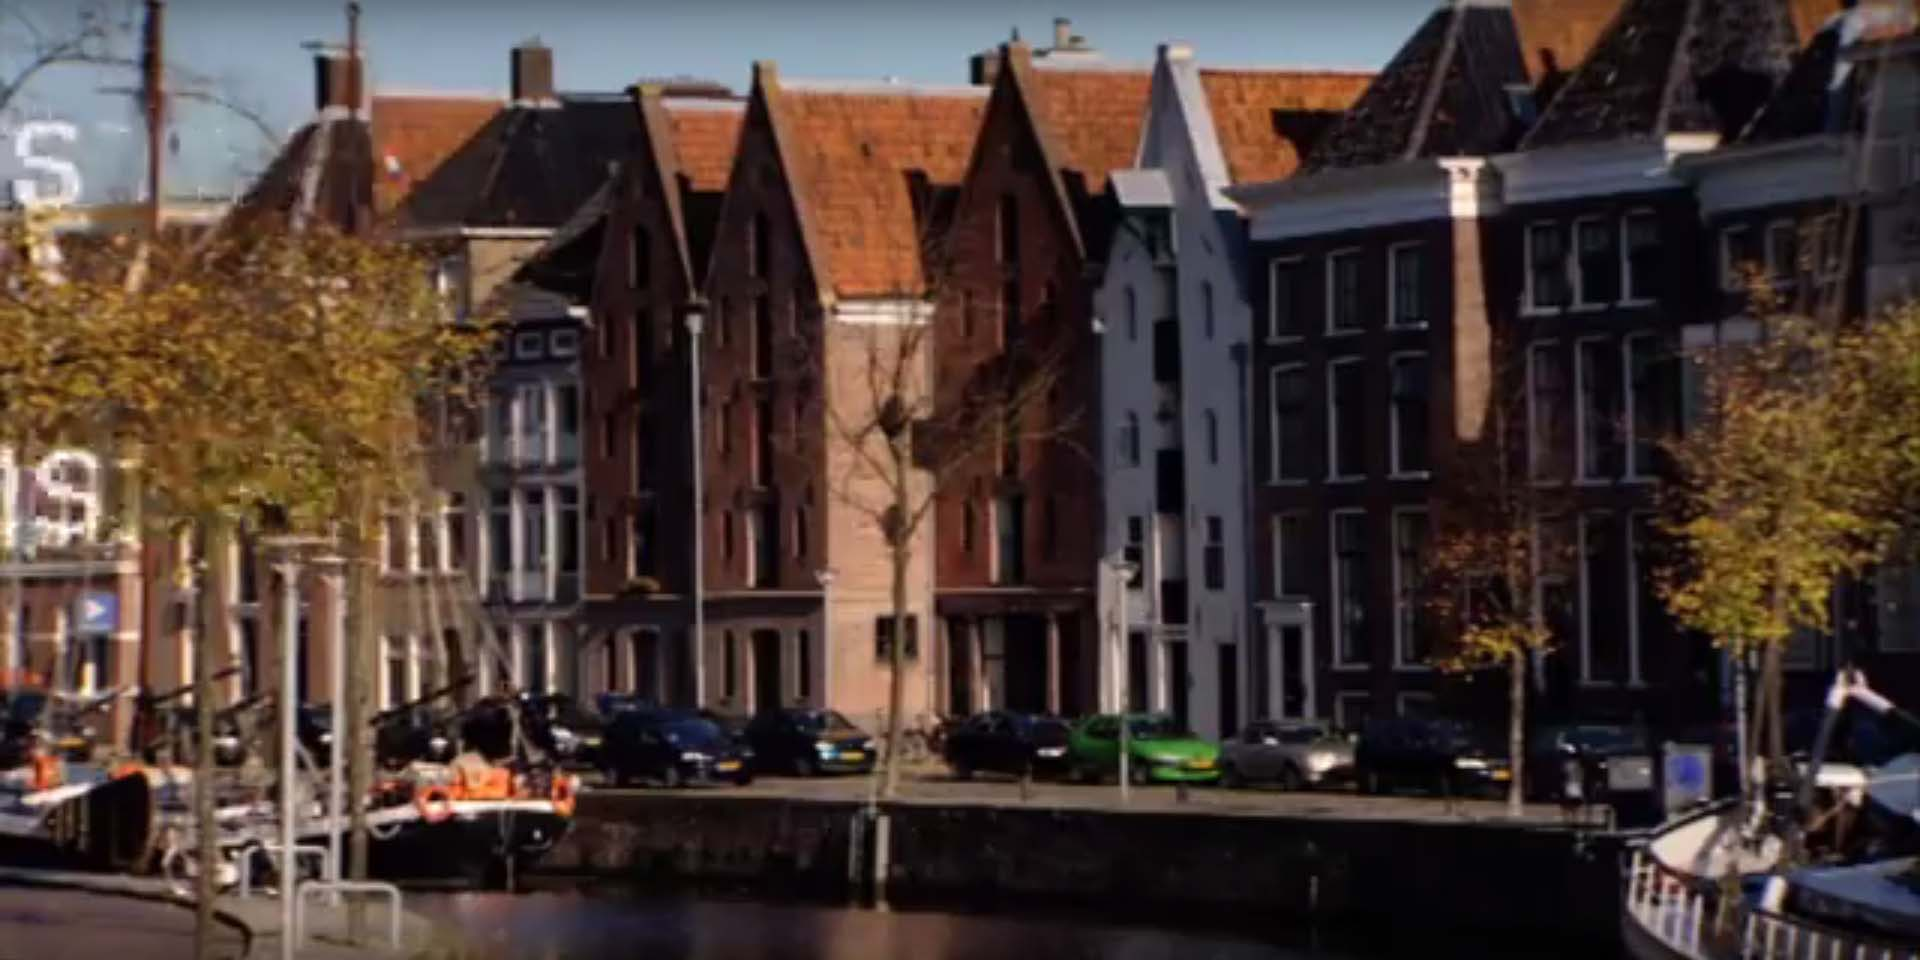 Video: Philosophy in Groningen